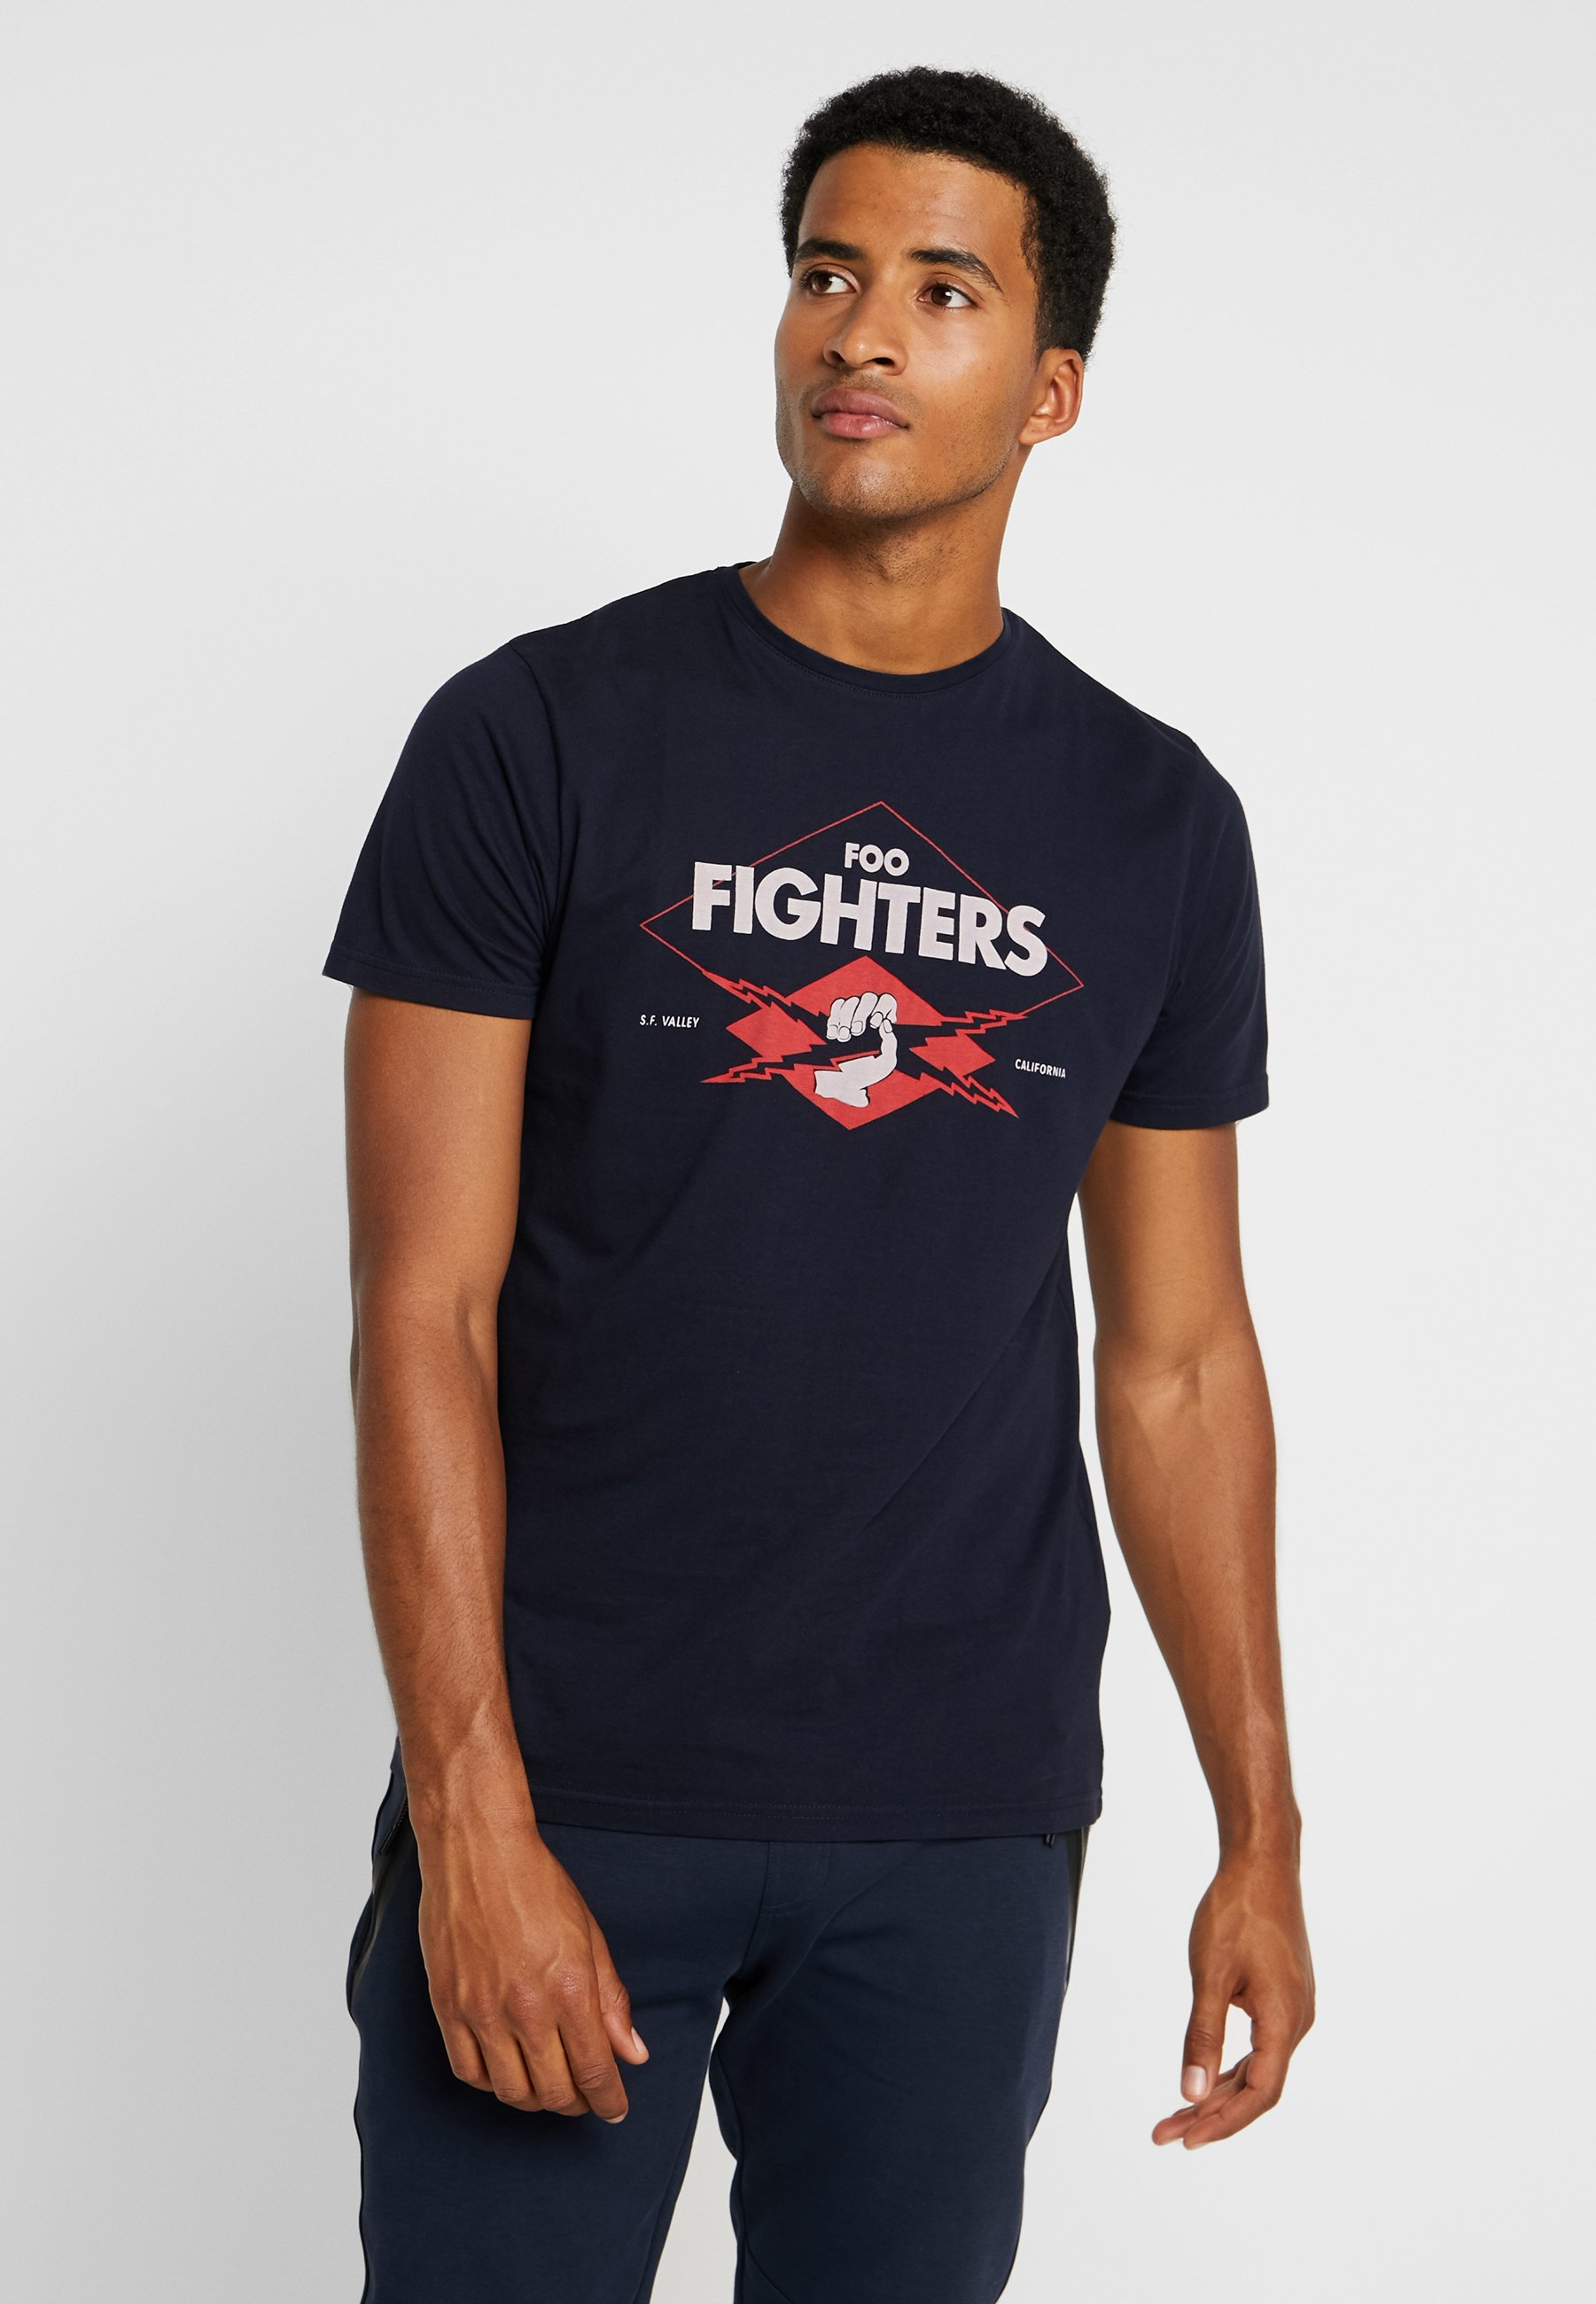 Springfield FightersT shirt Foo Imprimé Blues N8mn0w